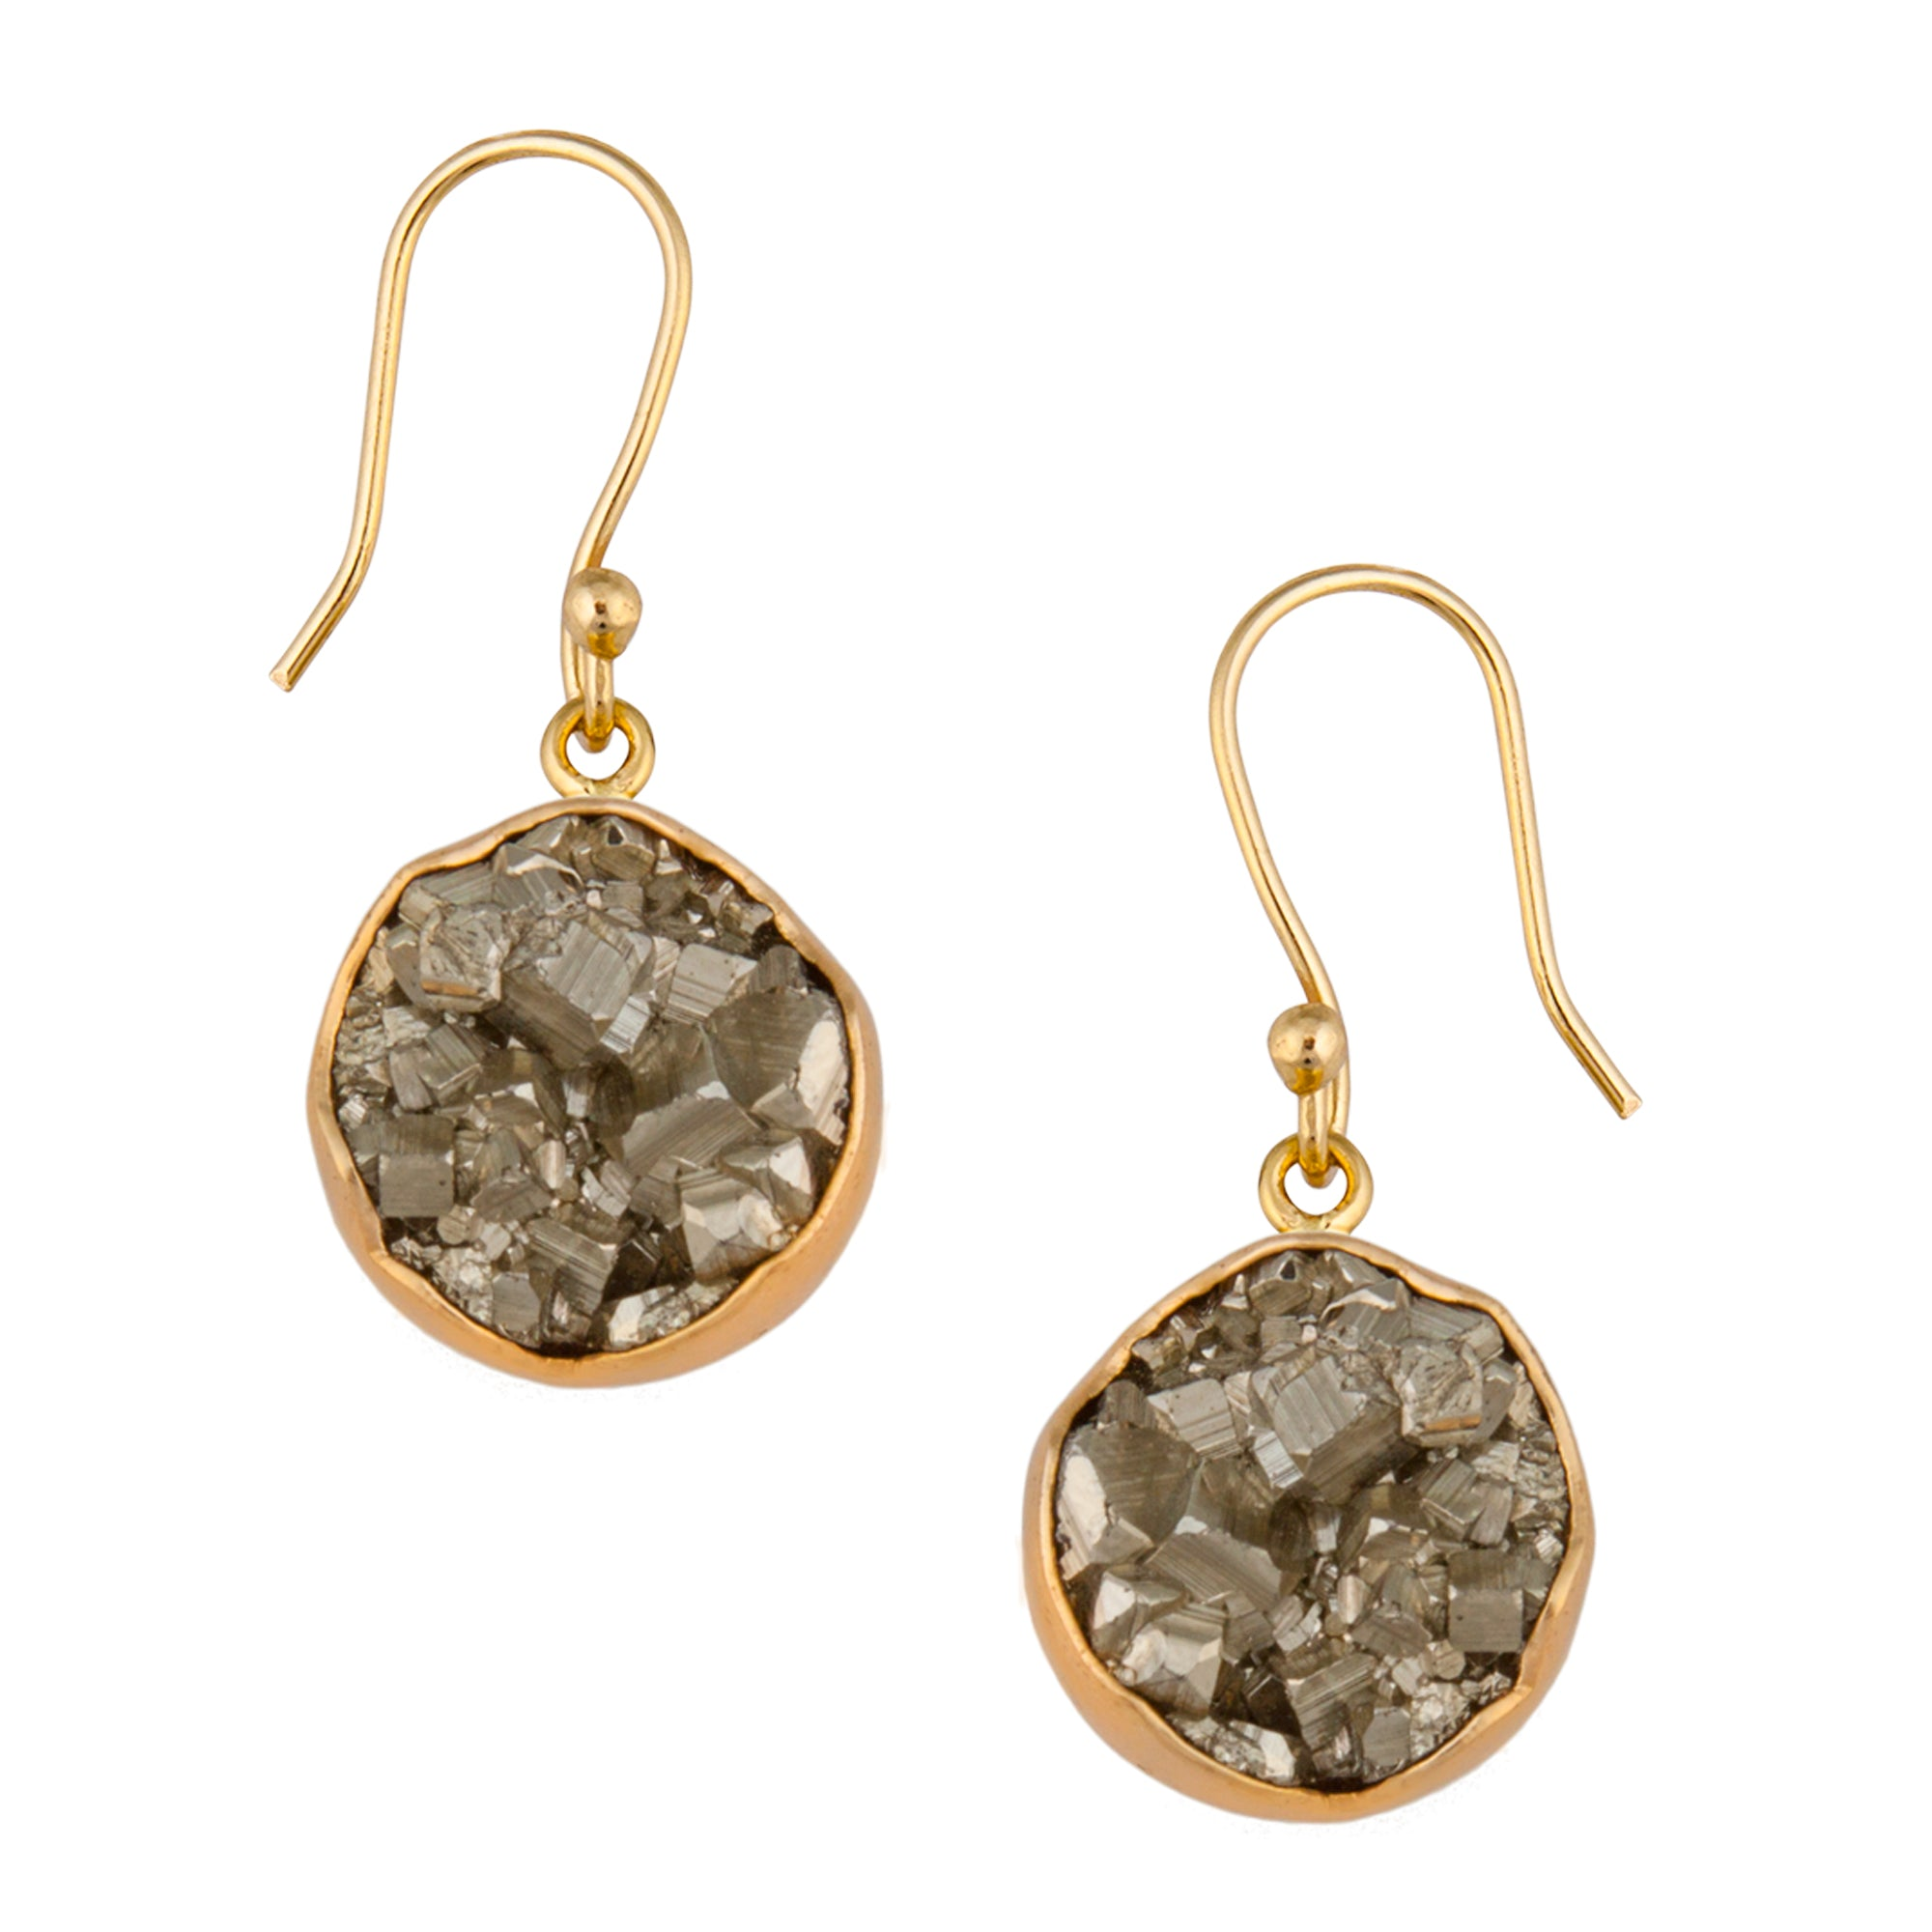 Alchemia Pyrite Round Dangle Earrings